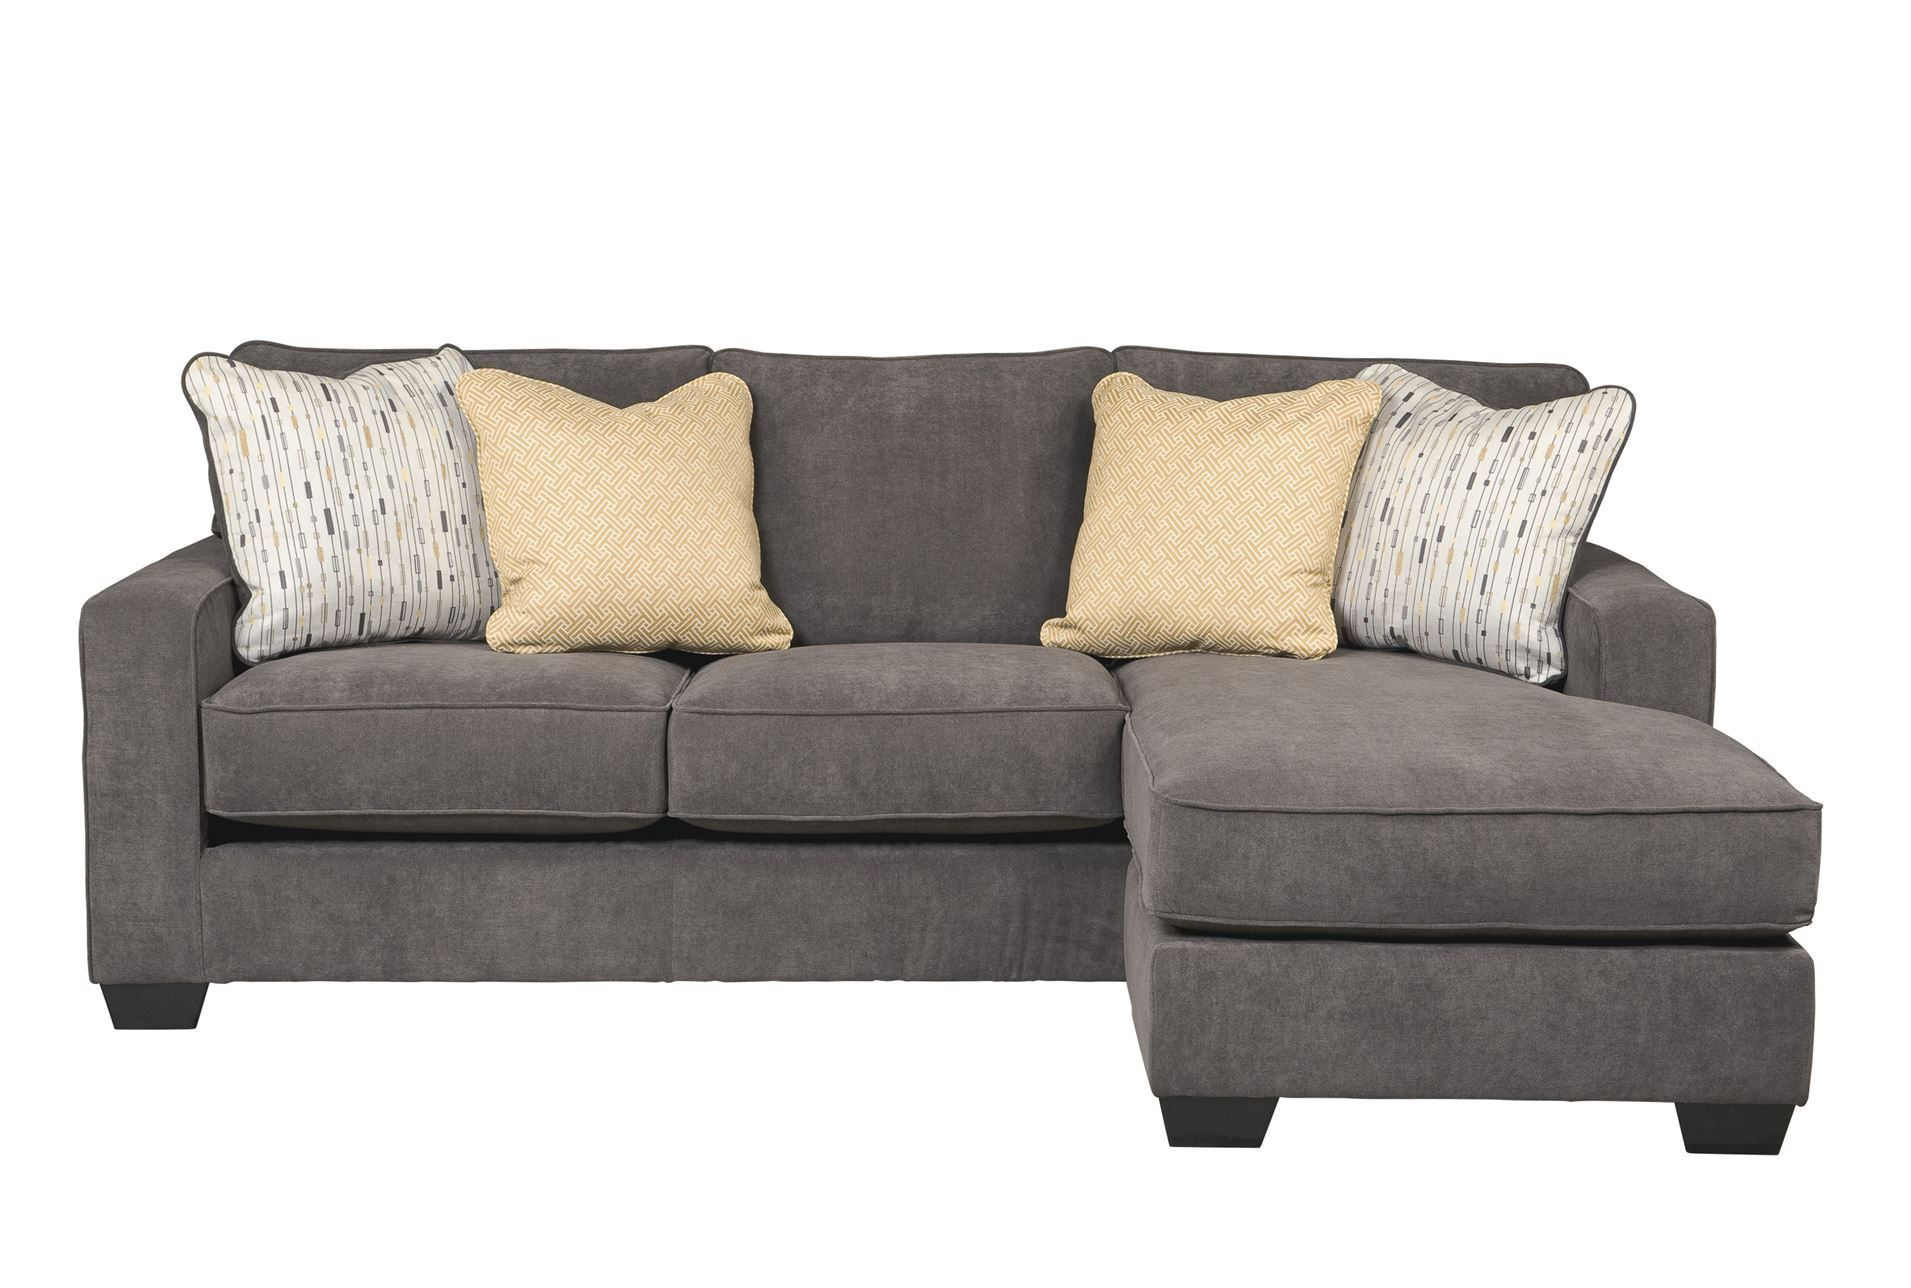 Meubles Ashley Divan Hodan Sofa Chaise For Our Home Pinterest Maison Deco Et Château